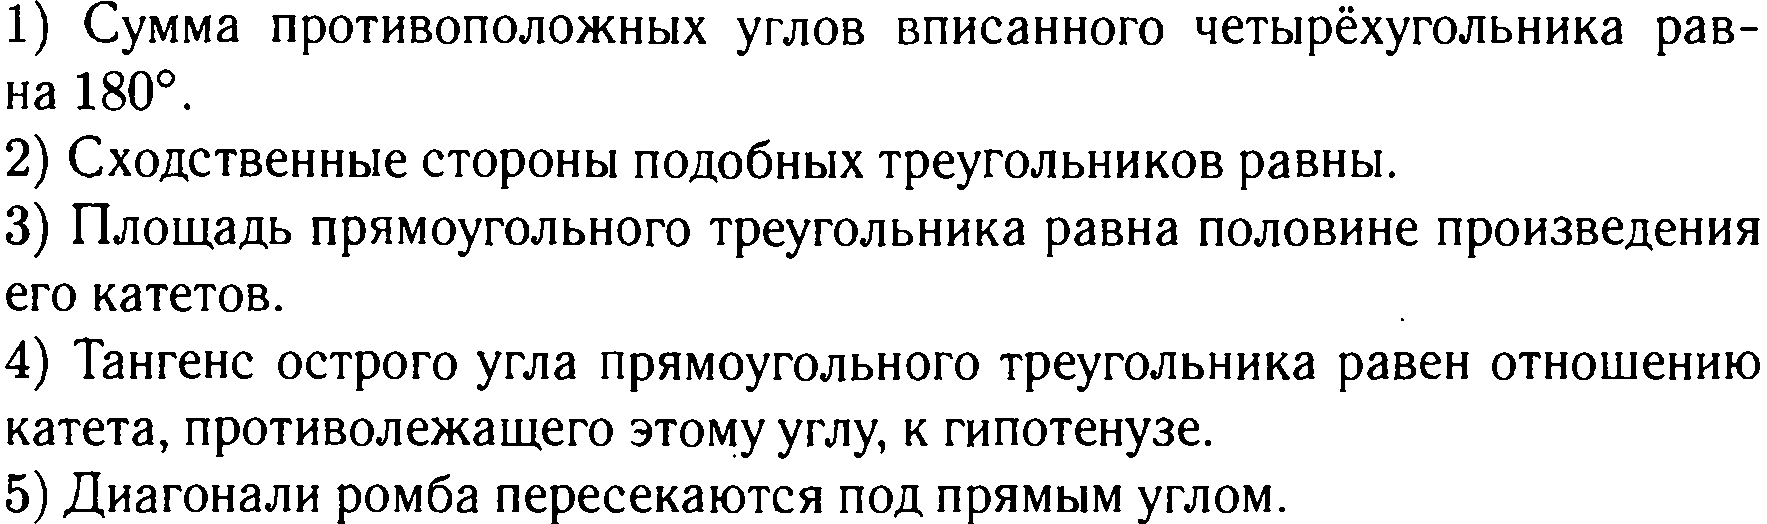 http://doc4web.ru/uploads/files/77/77306/hello_html_5302e432.png